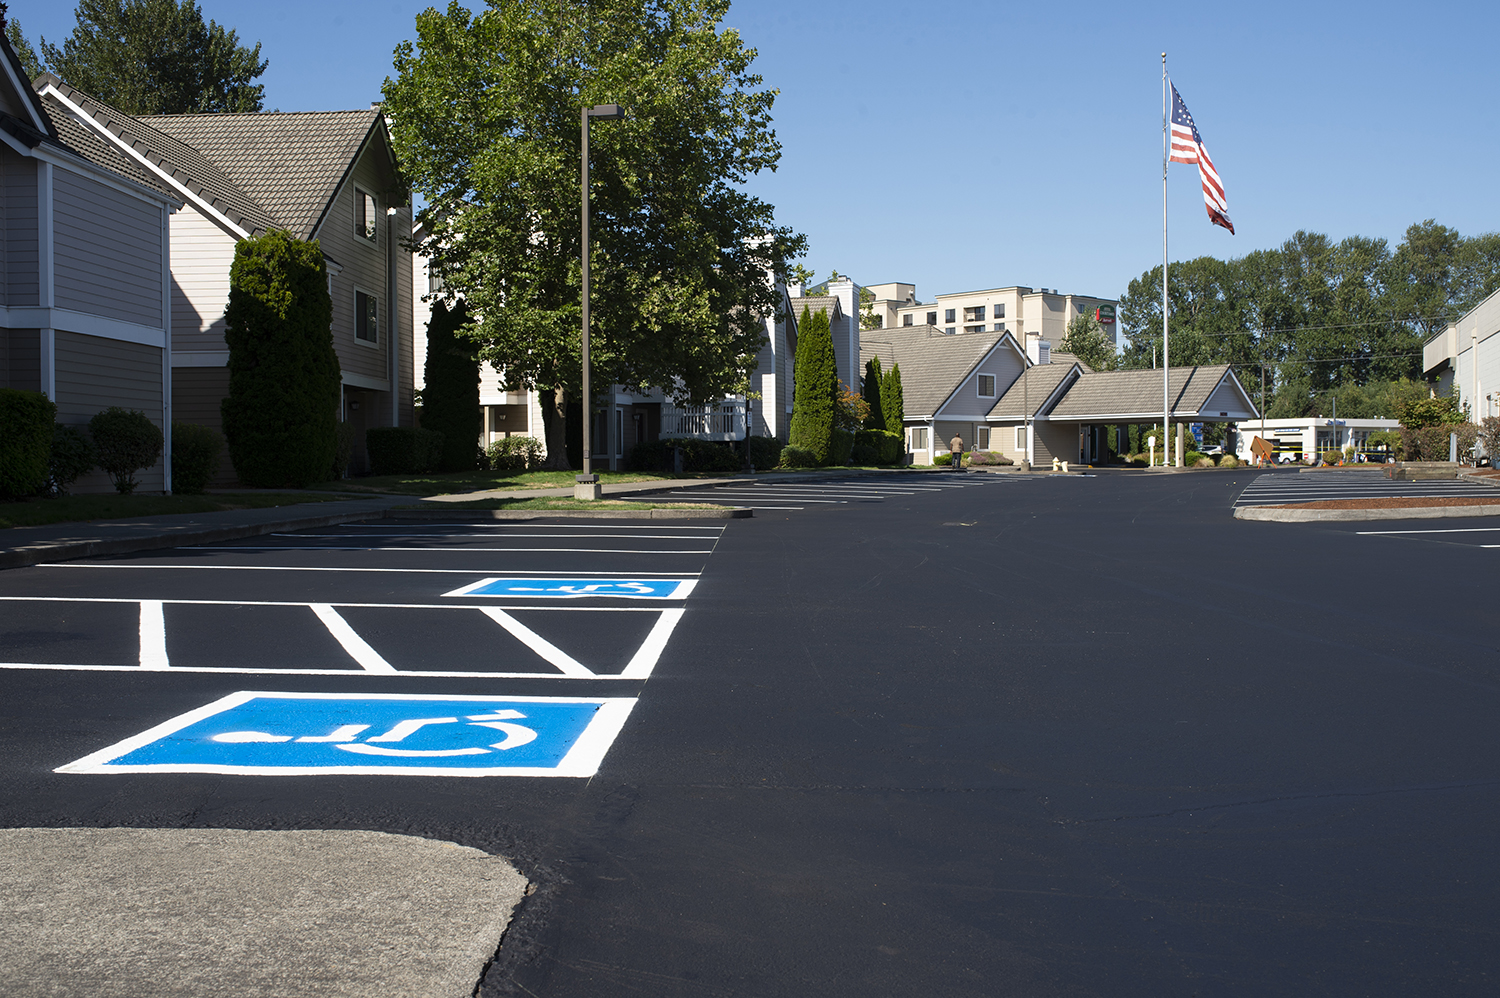 A freshly paved parking lot outside of a multifamily residence.